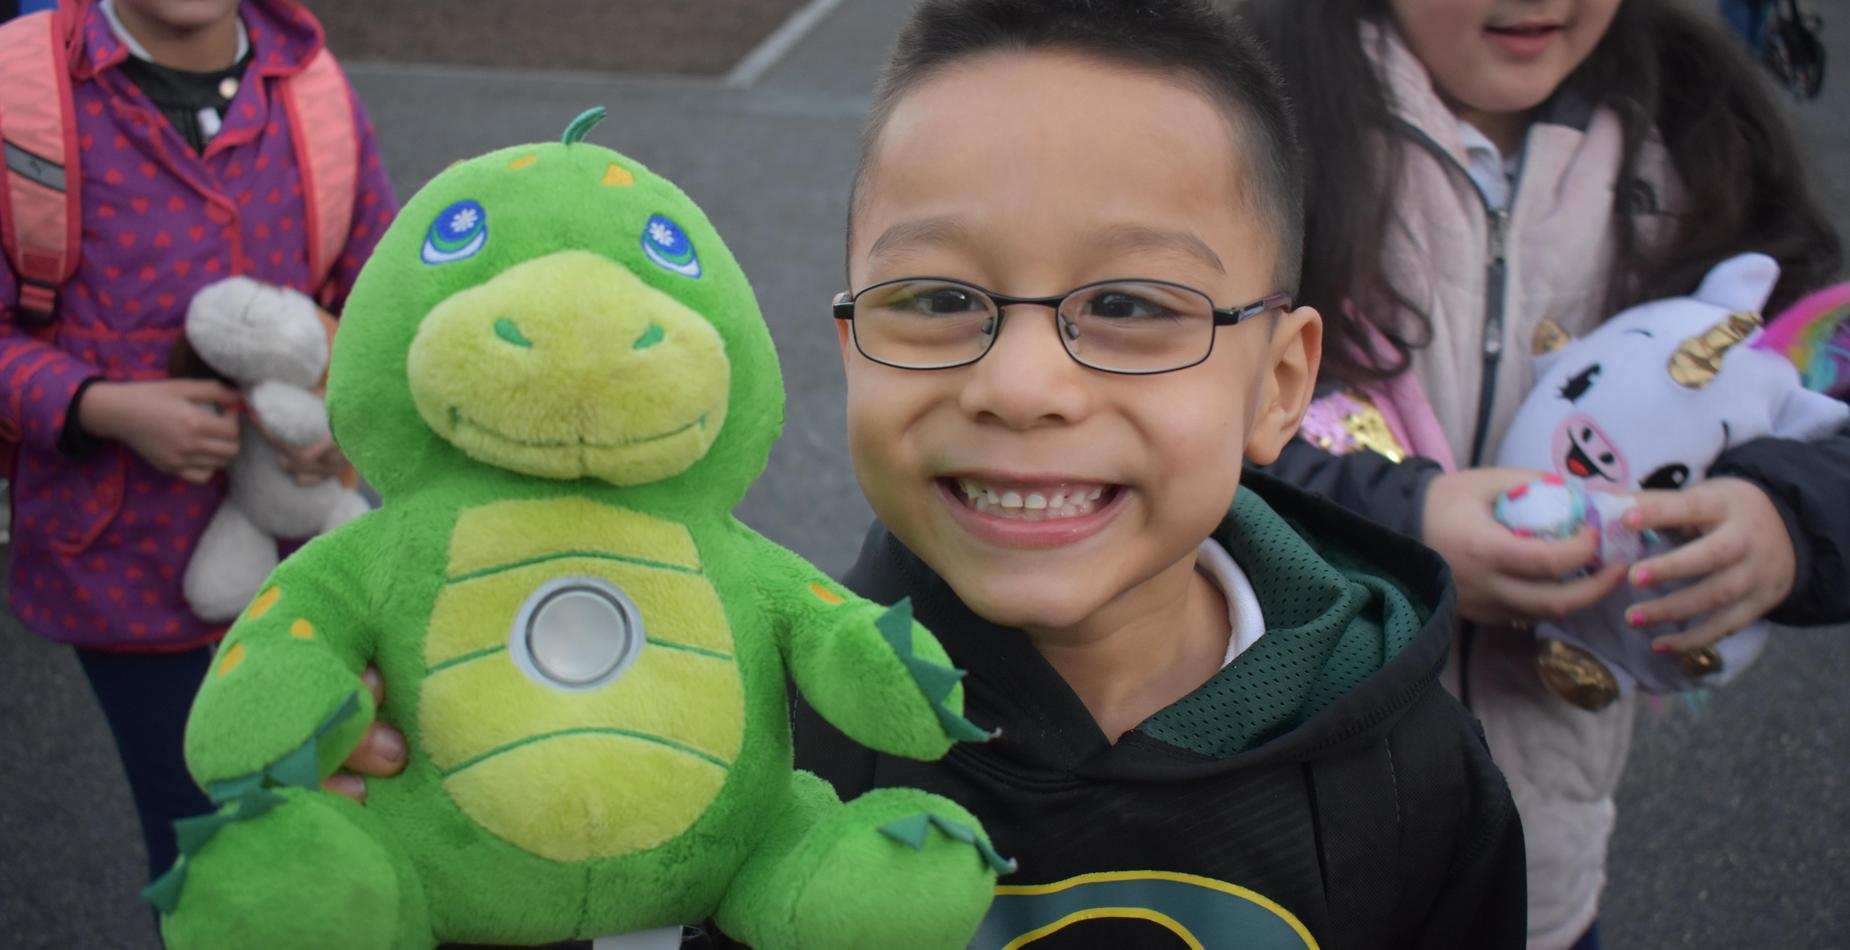 A little boy smiling as he holds his green stuffed animal!